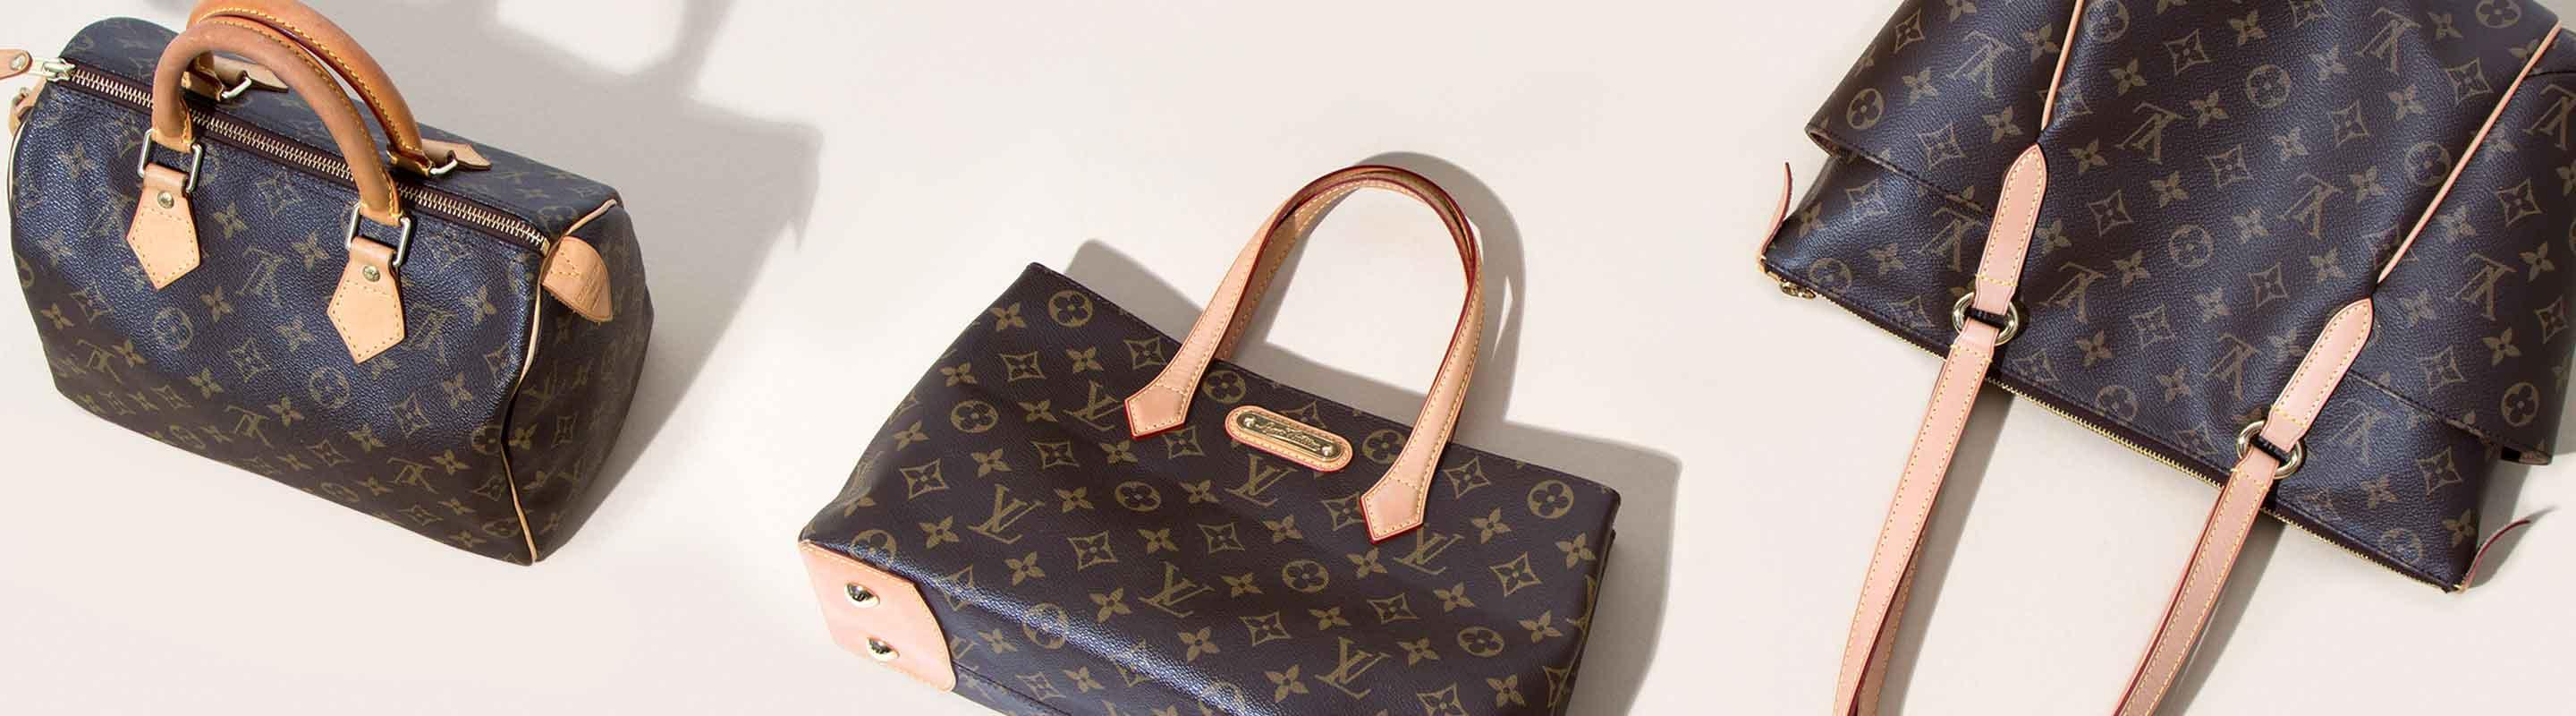 Louis Vuitton Bags on Sale - Up to 70% off at Tradesy